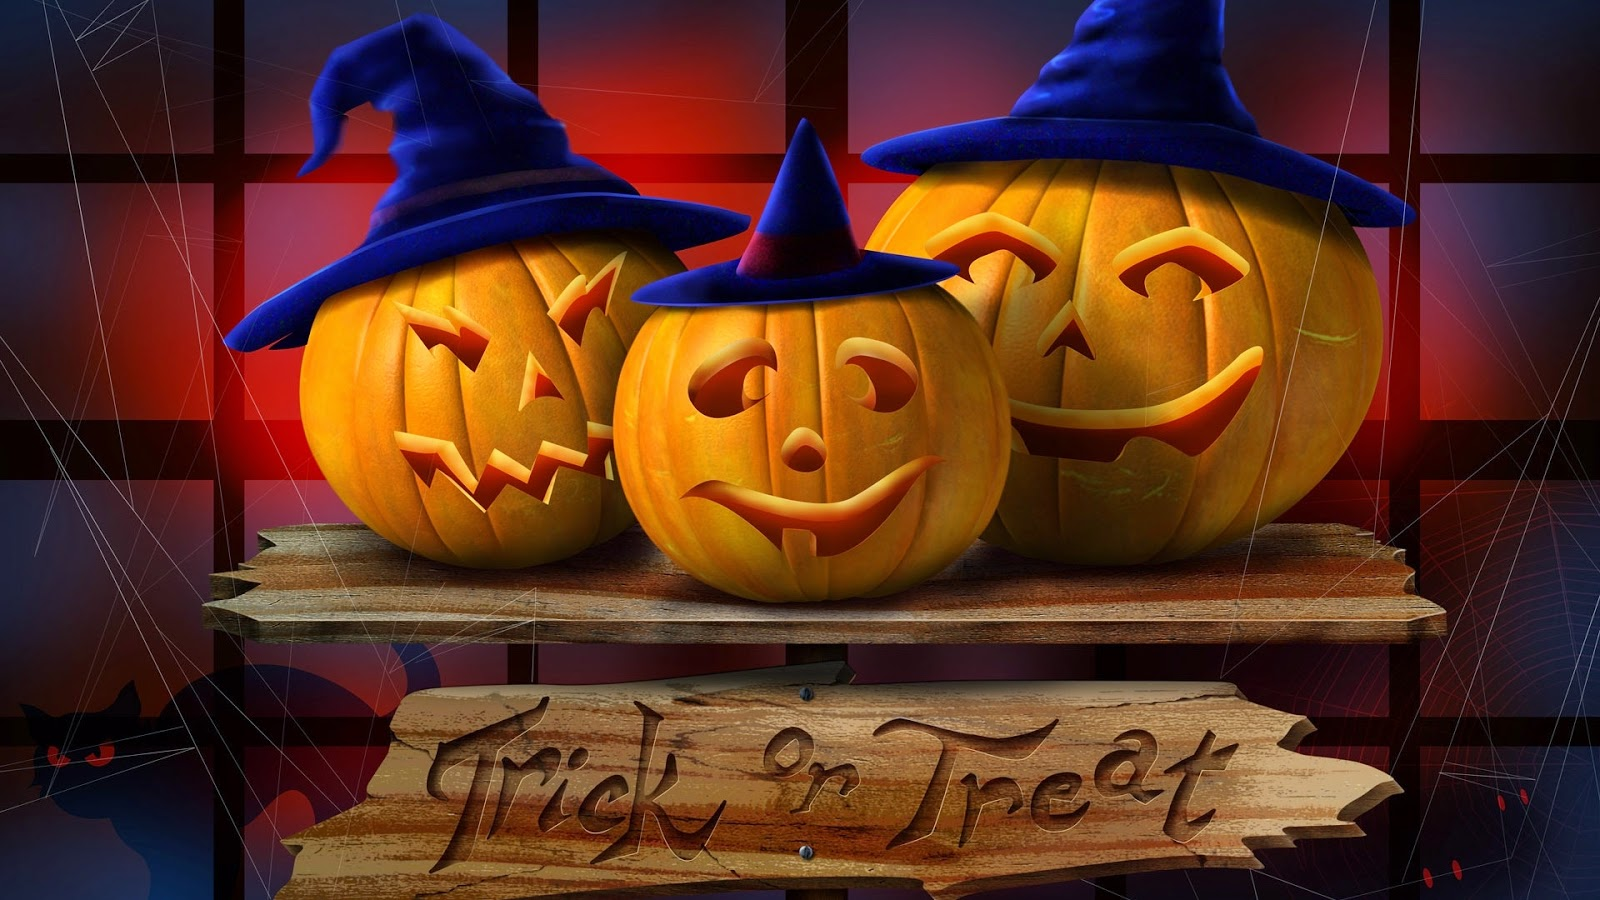 Trick-or-treat-halloween-holiday-pumpkin-image-pictures.jpg